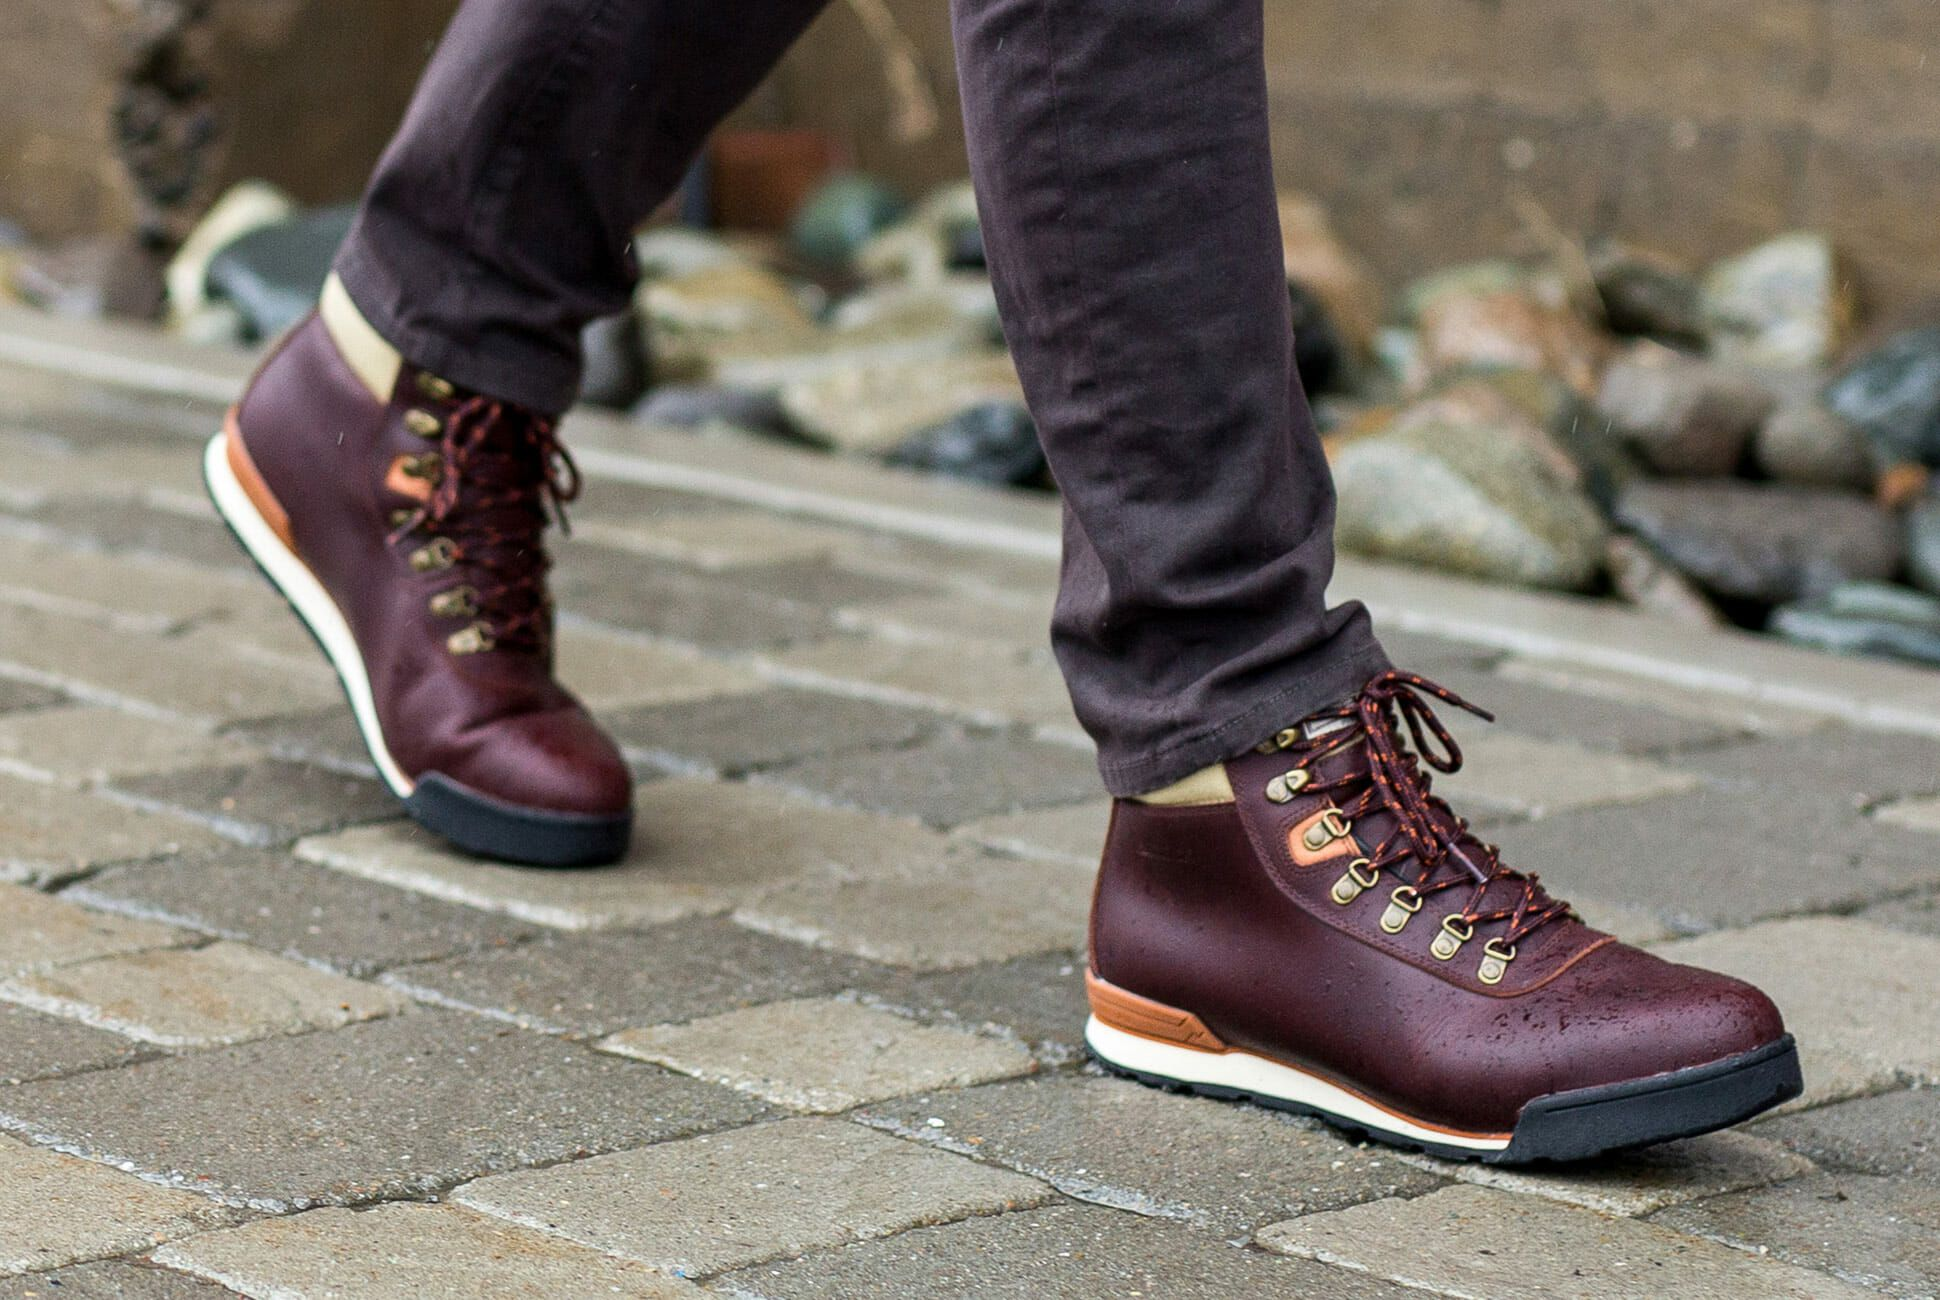 The Hiking Boots We'd Wear All the Time While Traveling